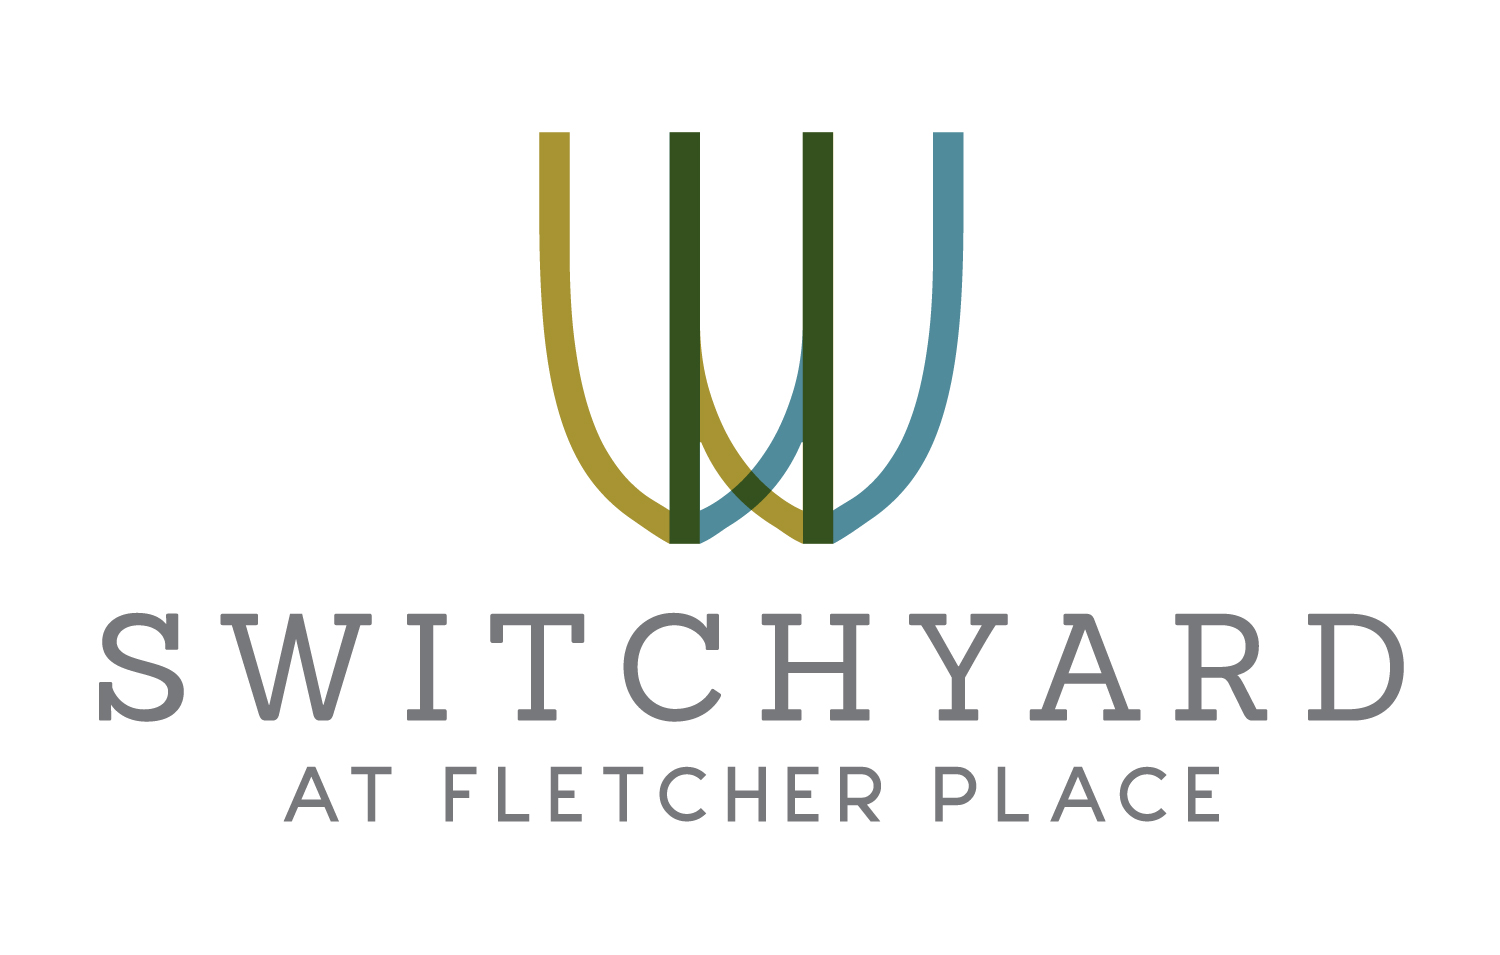 Switchyard at Fletcher Place